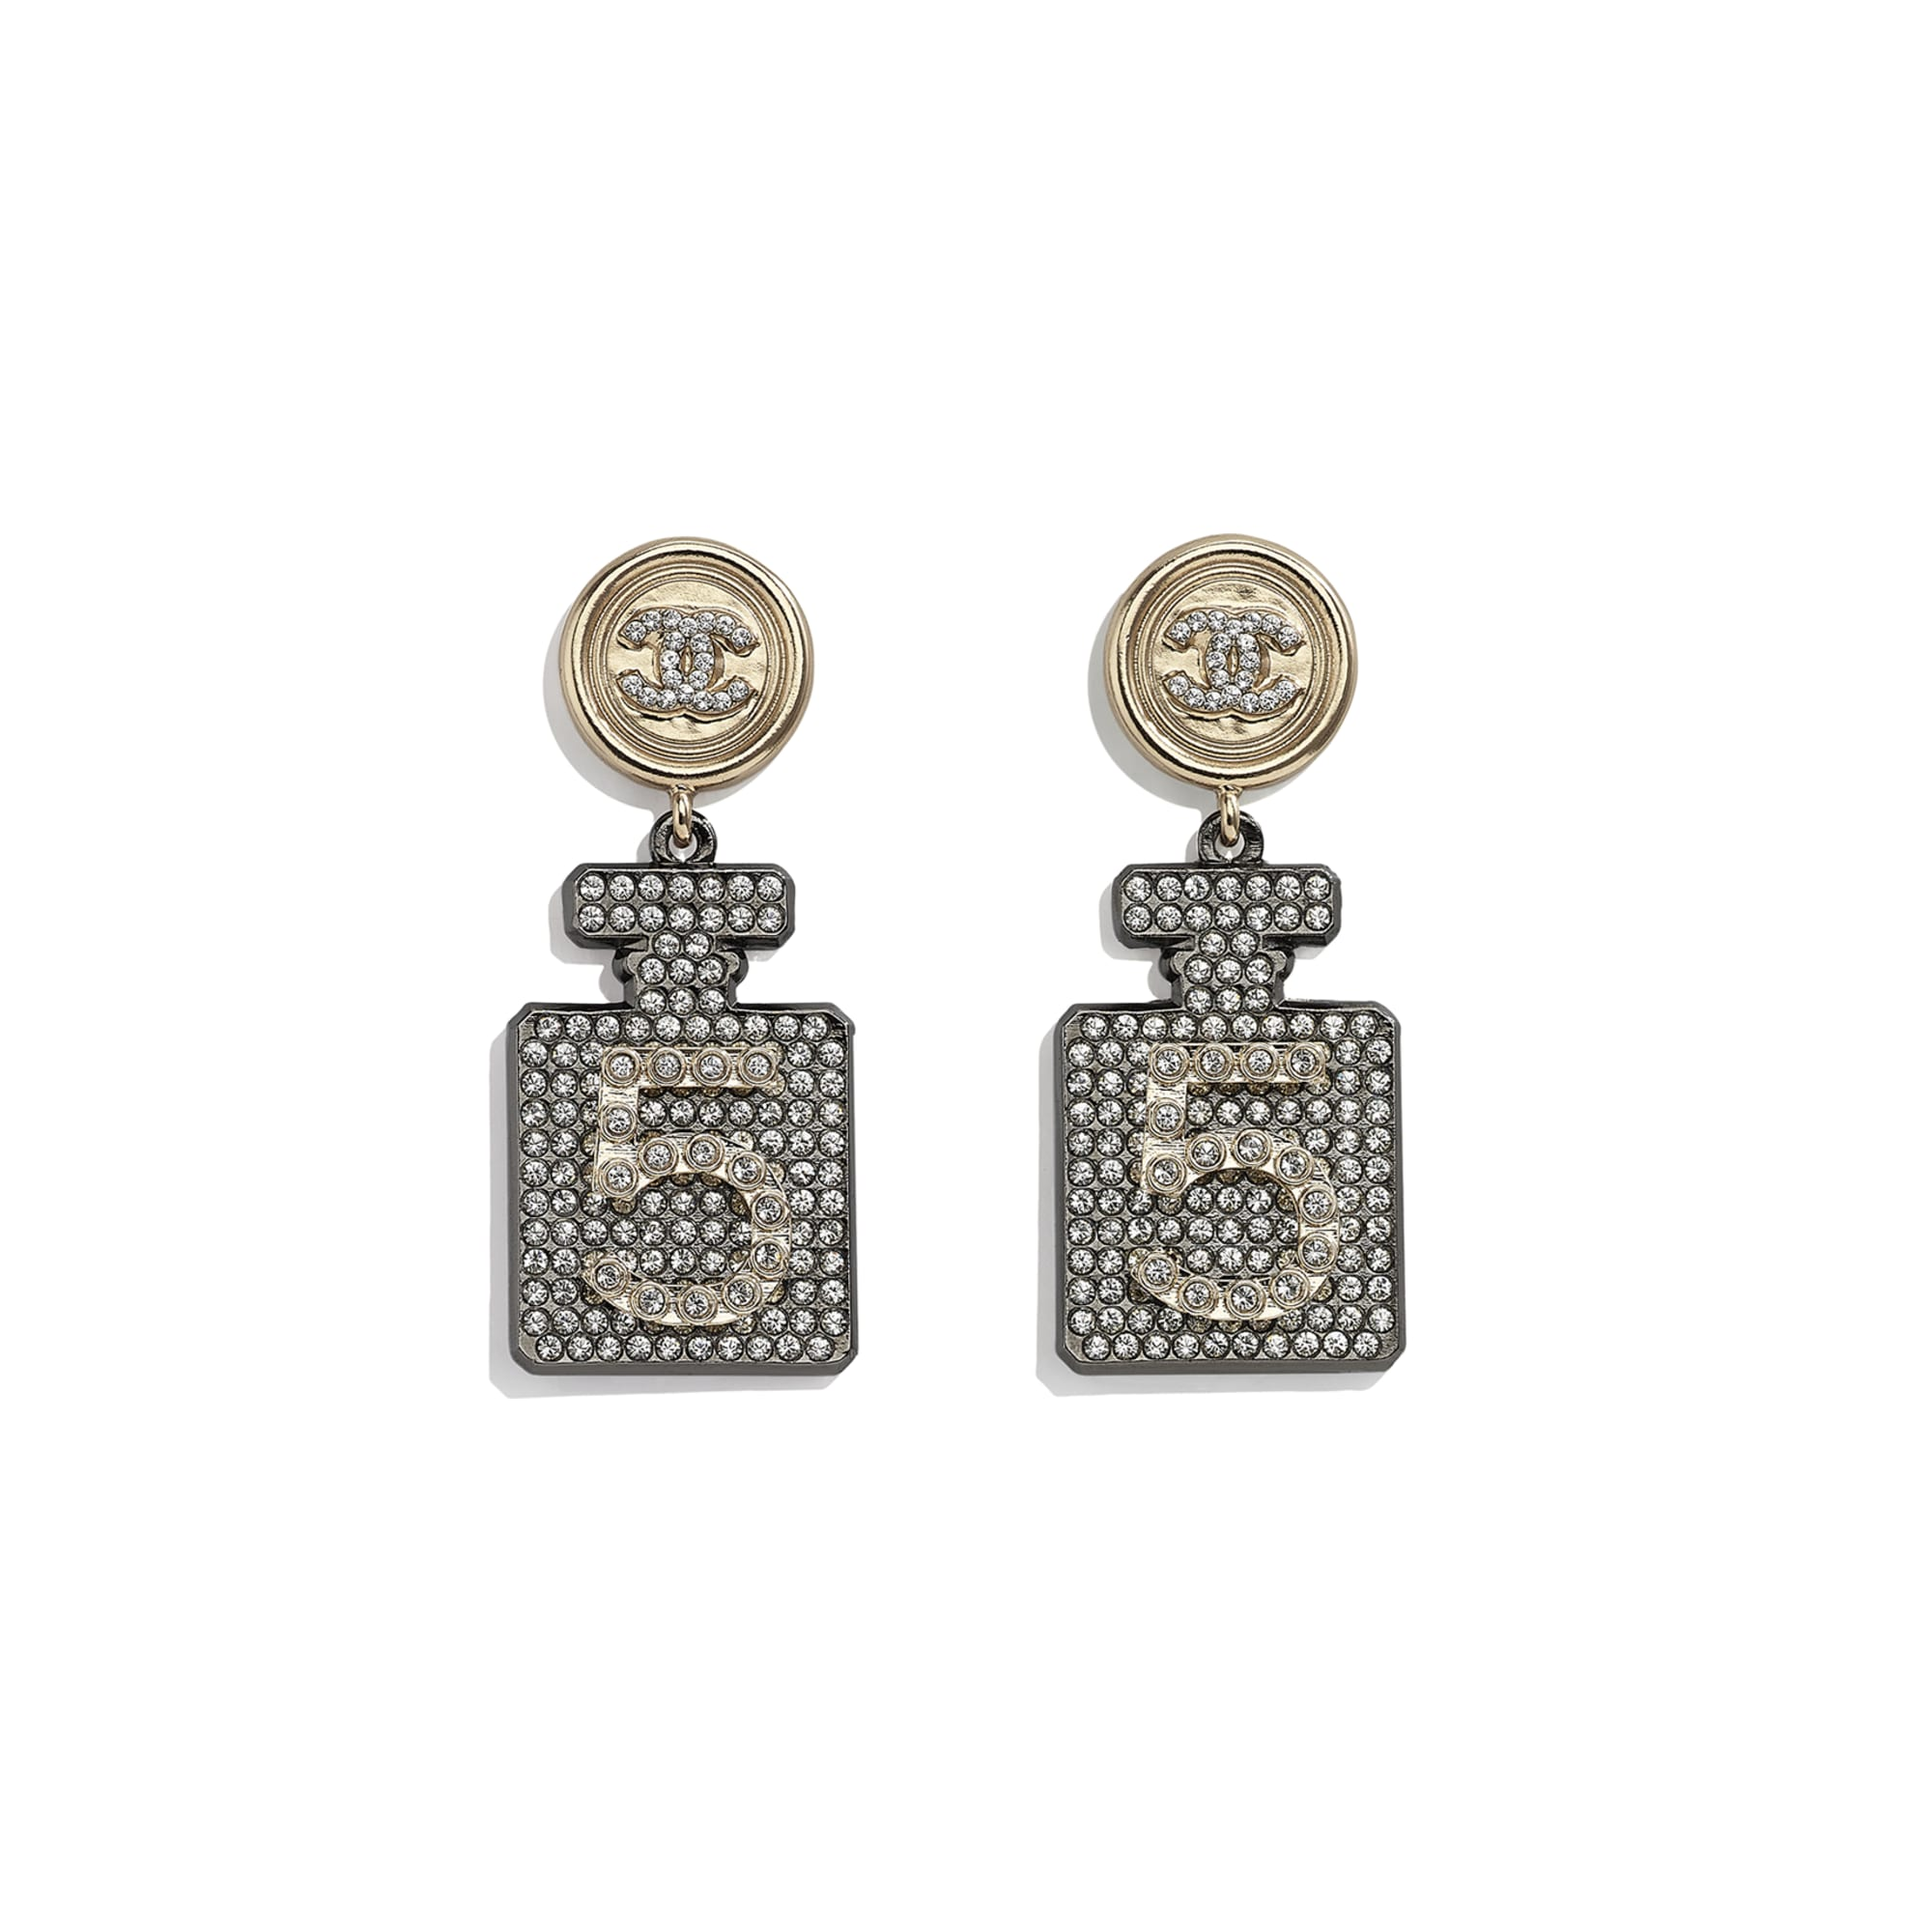 Earrings - Ruthenium, Gold & Crystal - Metal & Diamantés - CHANEL - Default view - see standard sized version